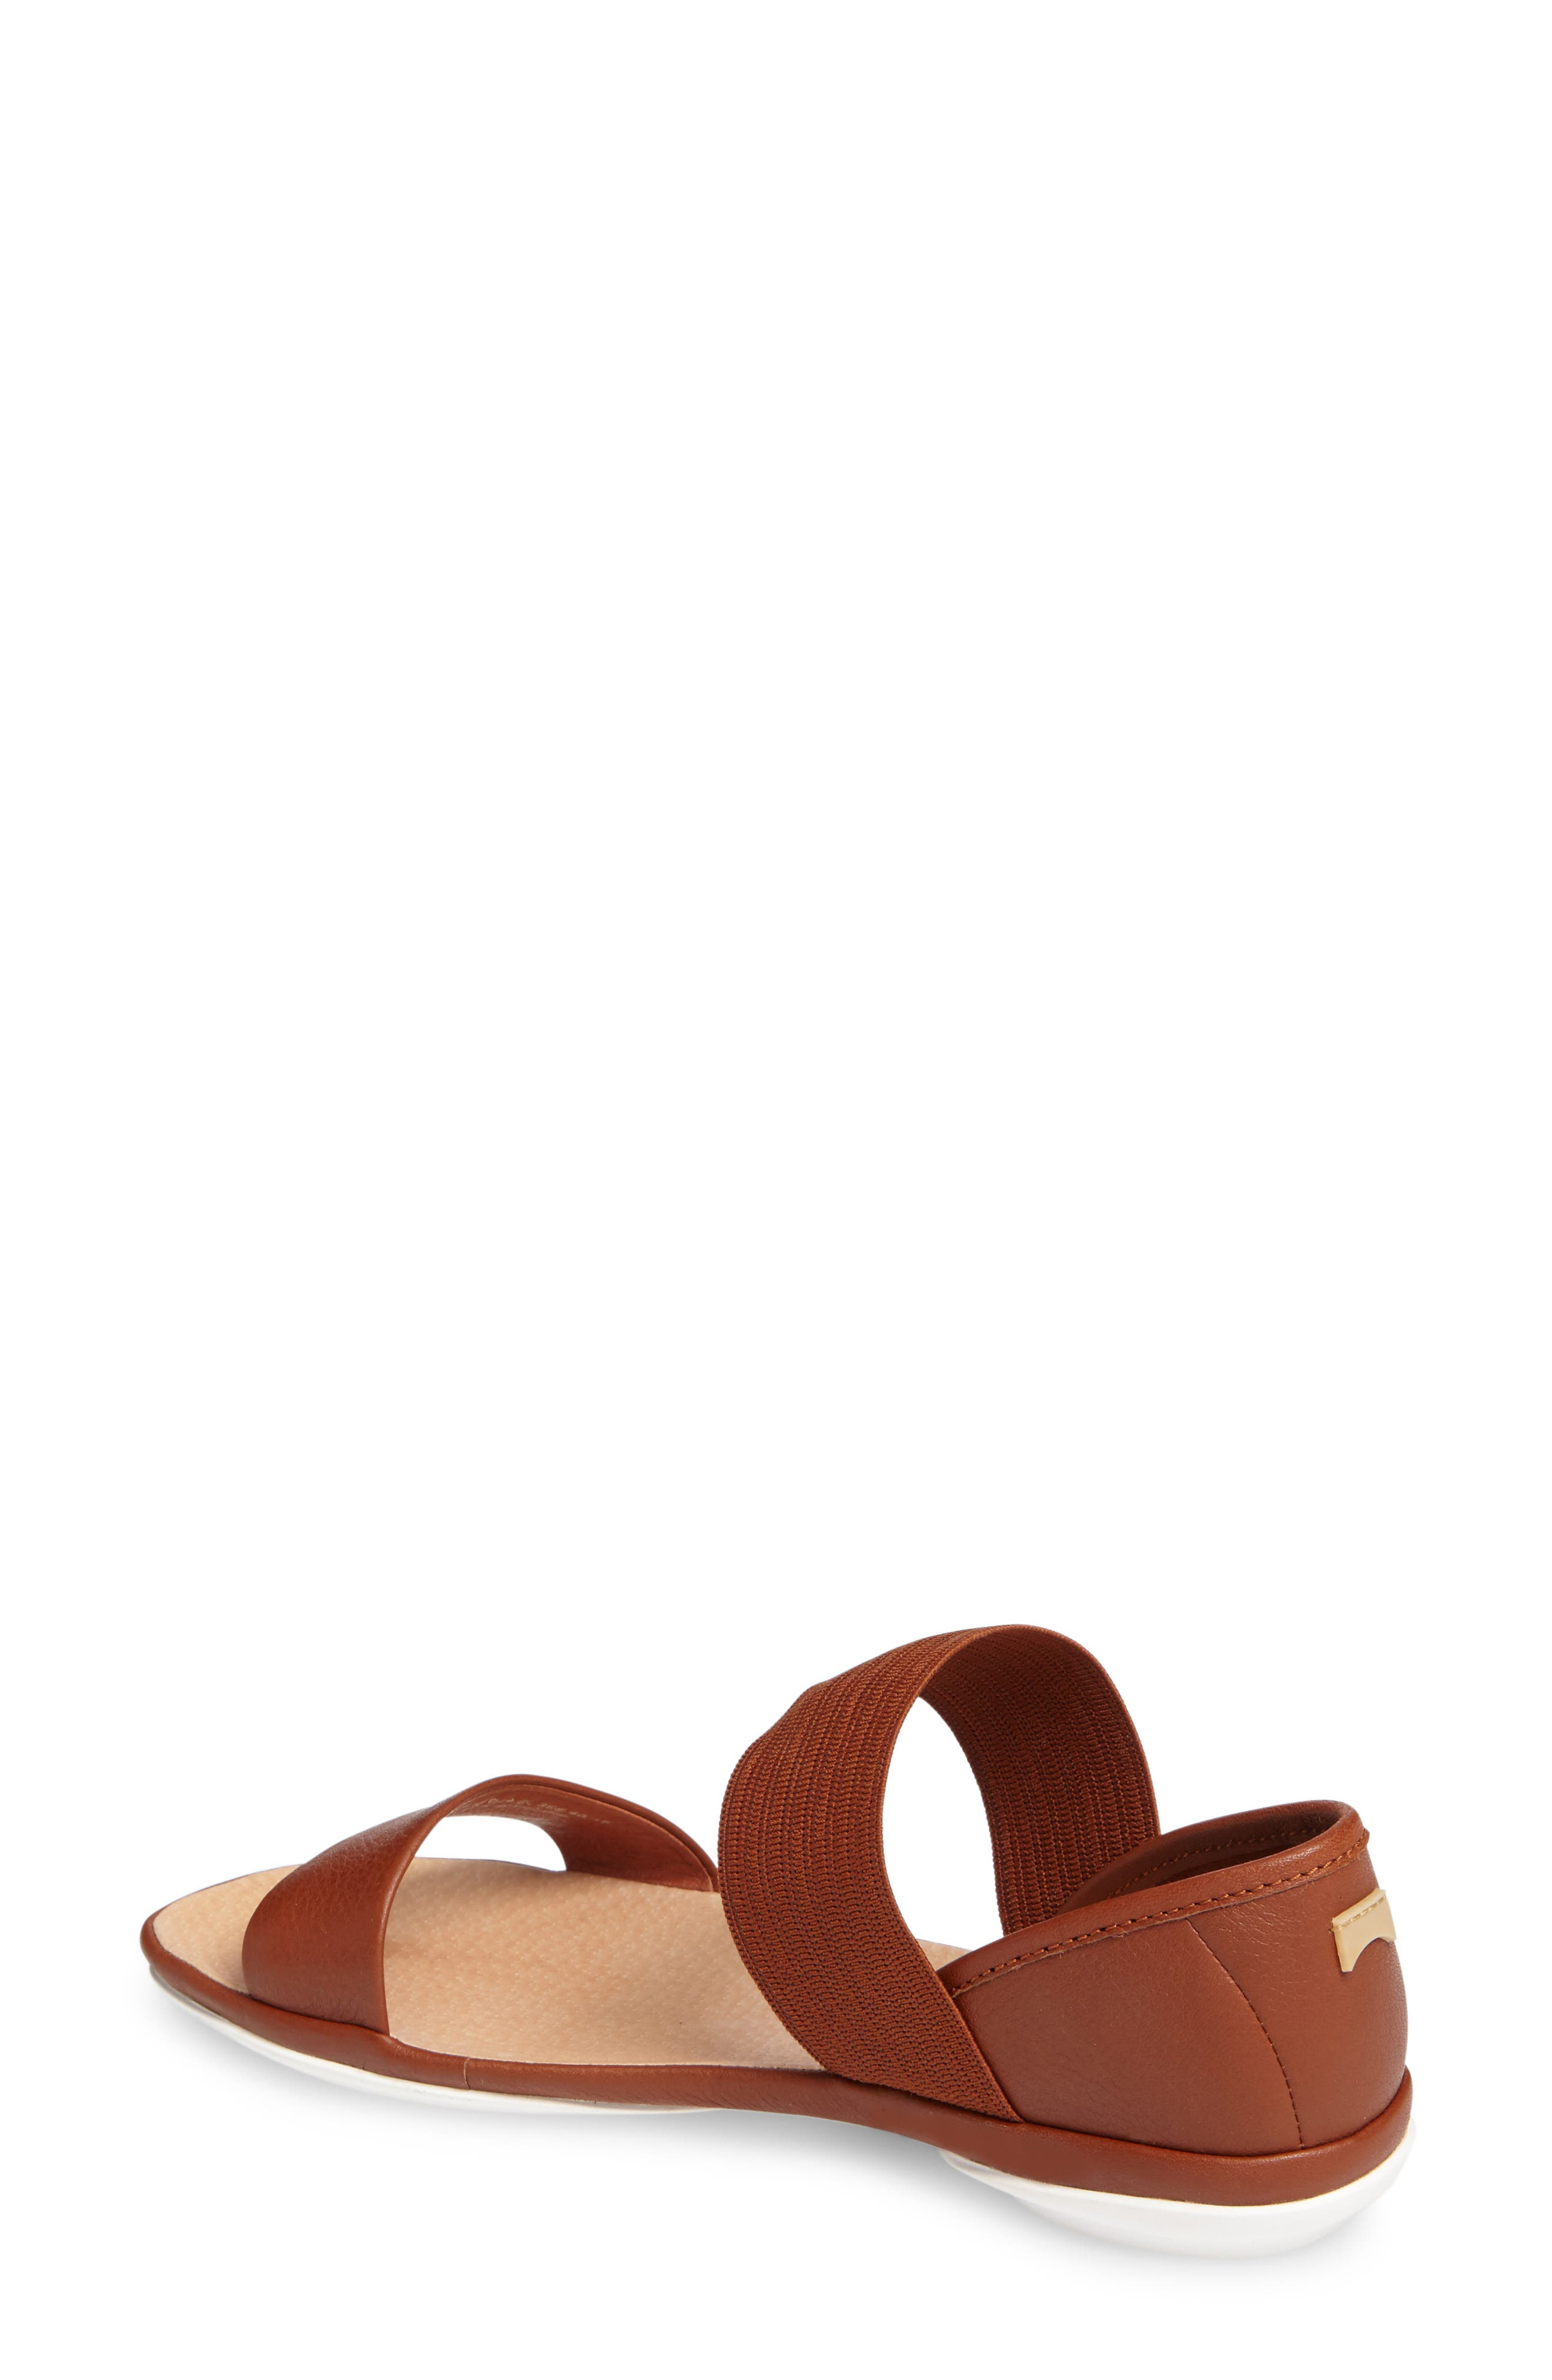 'Right Nina' Sandal,                             Alternate thumbnail 2, color,                             Brown Leather